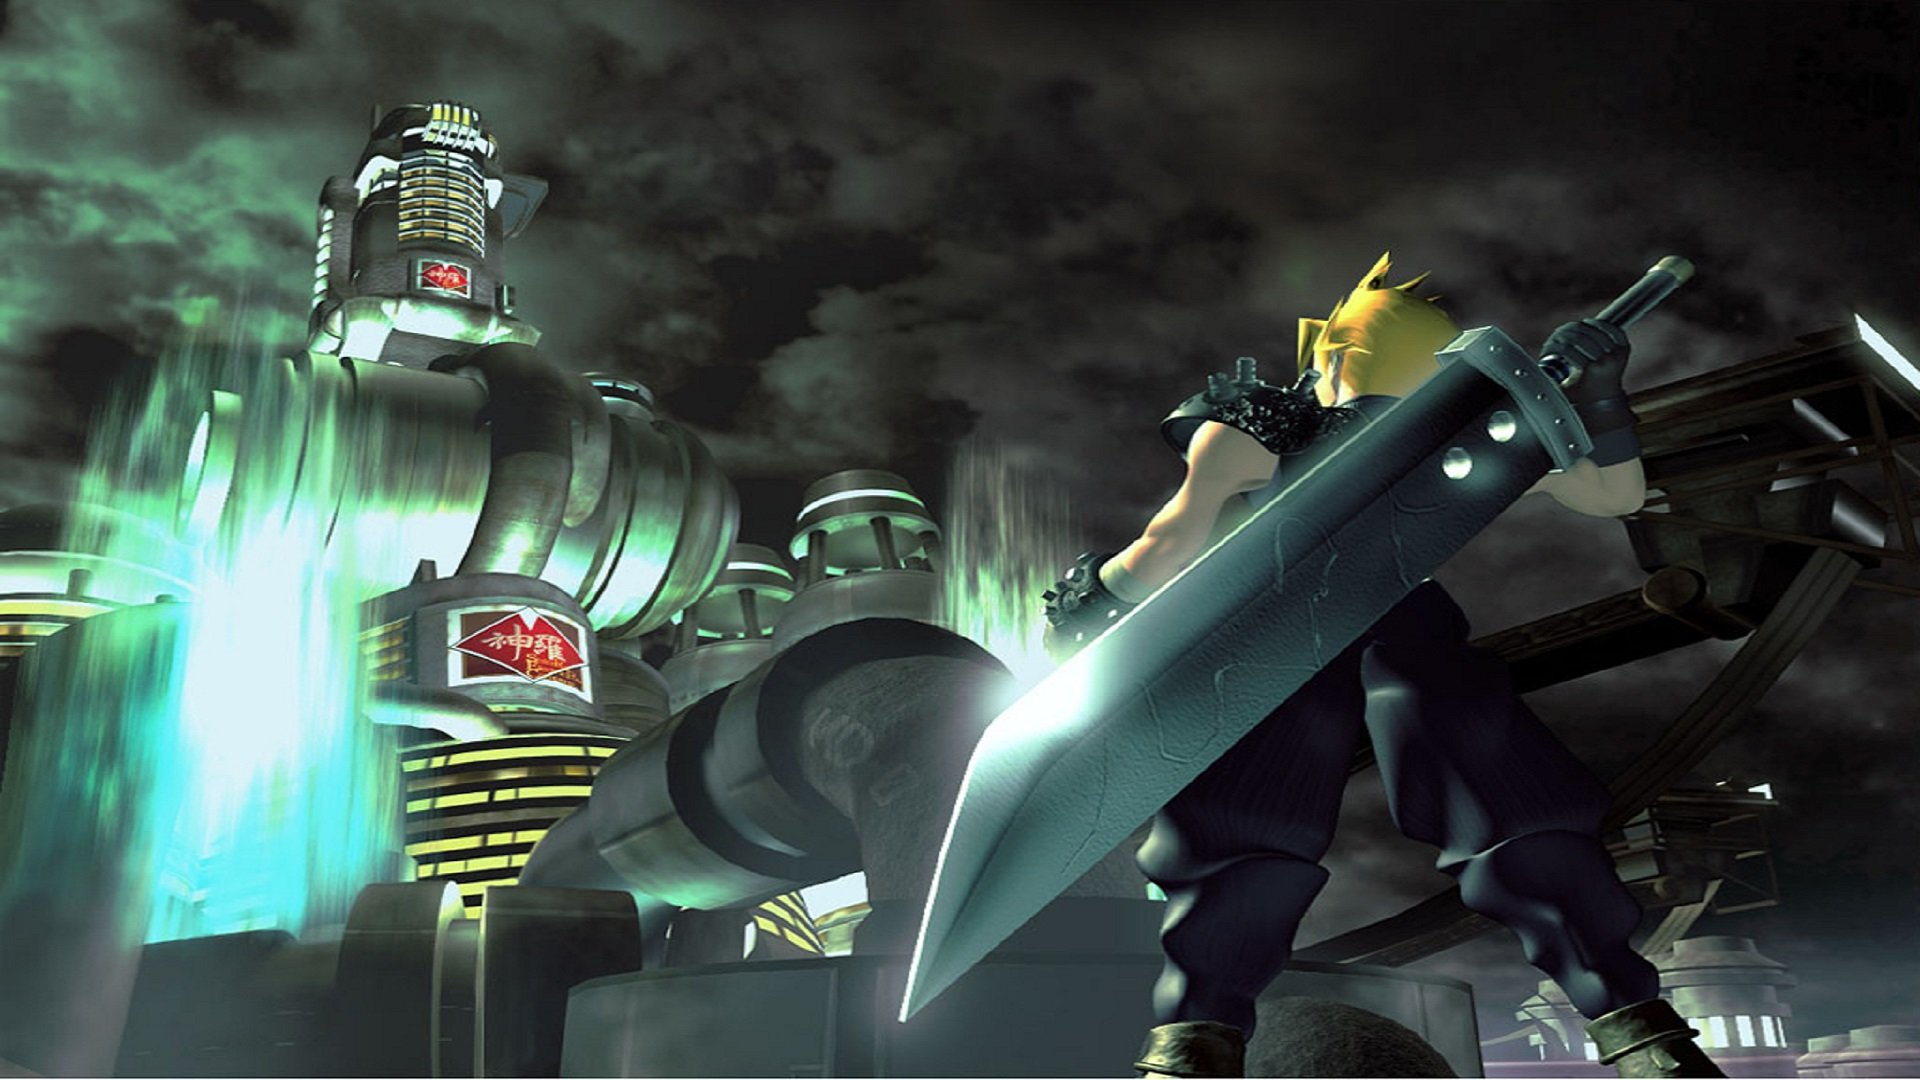 Final Fantasy Vii Ff7 Wallpapers 1920x1080 Full Hd 1080p